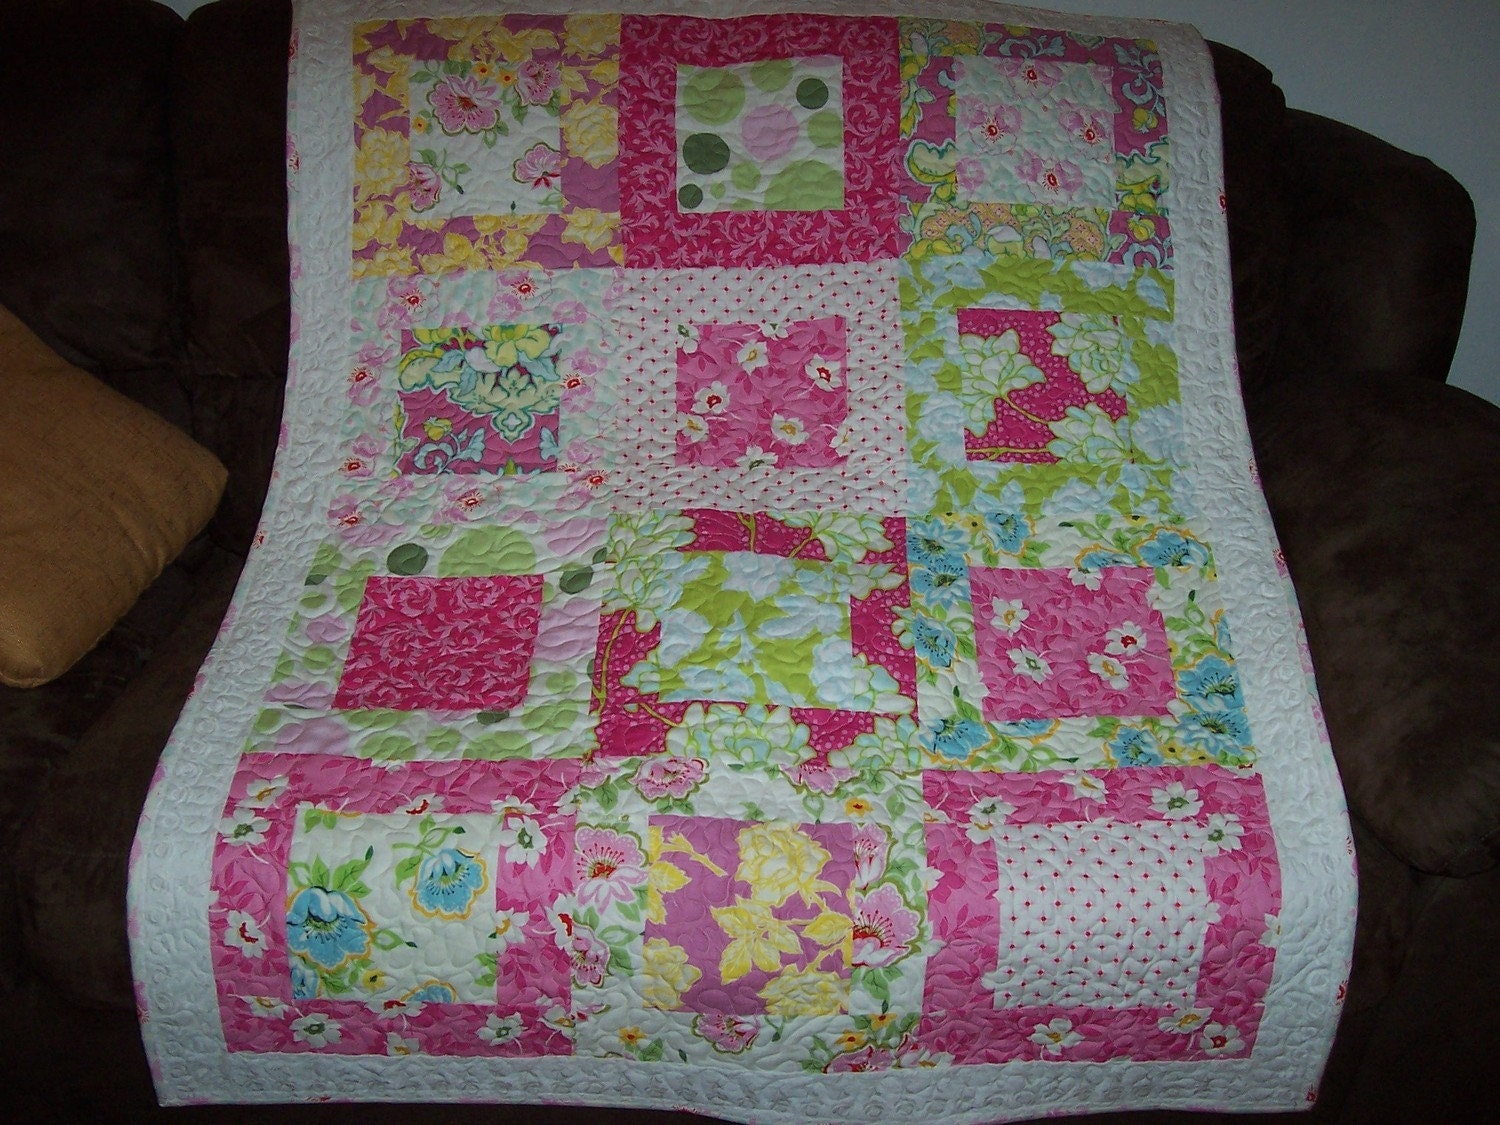 Large Square Block Quilt Patterns : Large Square Framed Block Quilt Pattern Tutorial w by beffie48